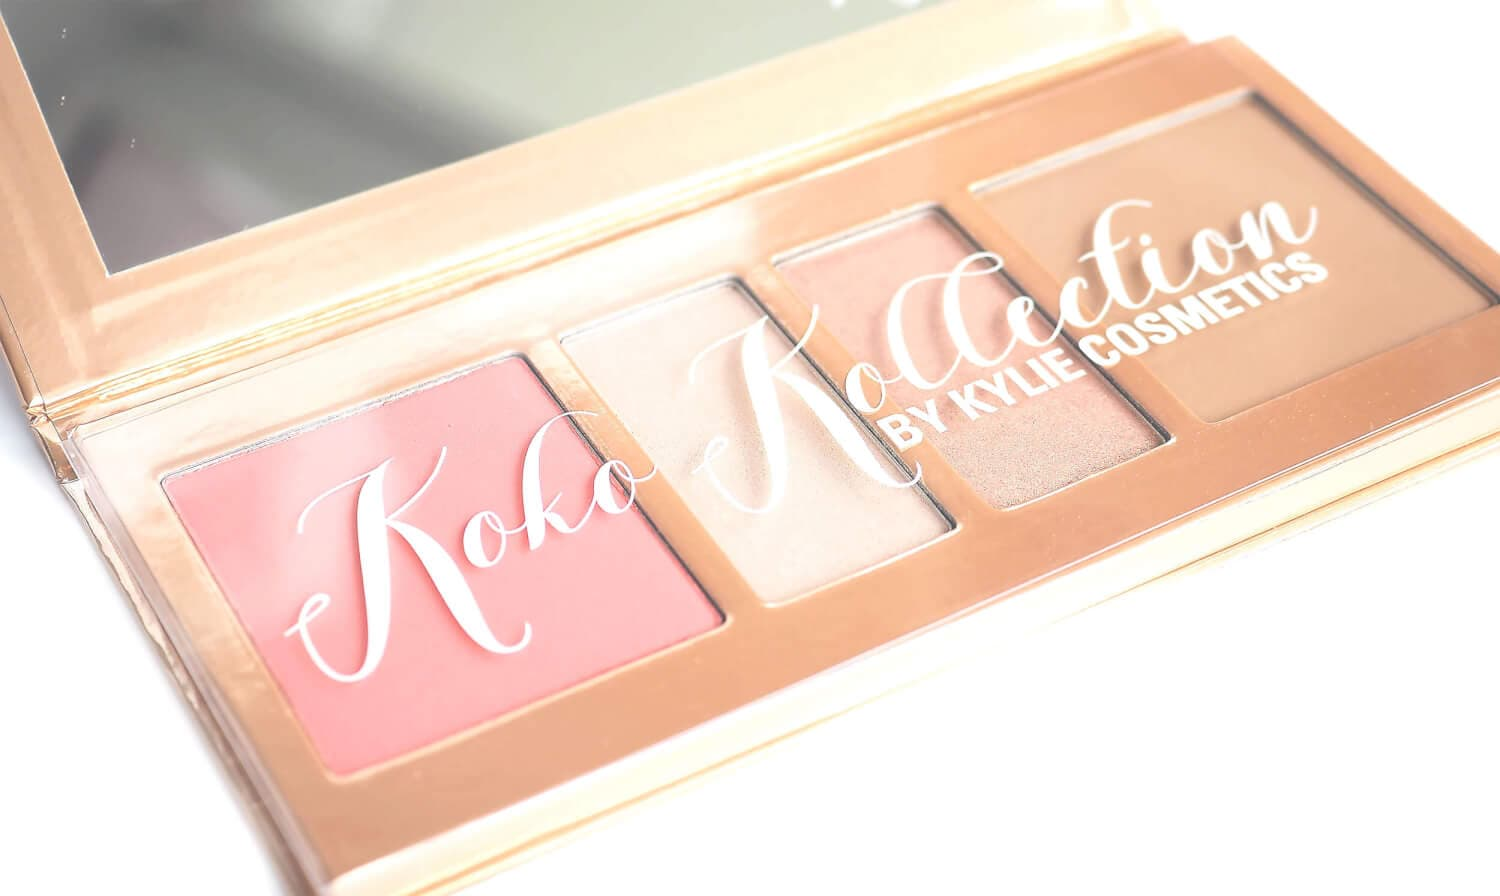 KYLIE COSMETICS KOKO KOLLECTION PRESSED POWDER PALETTE